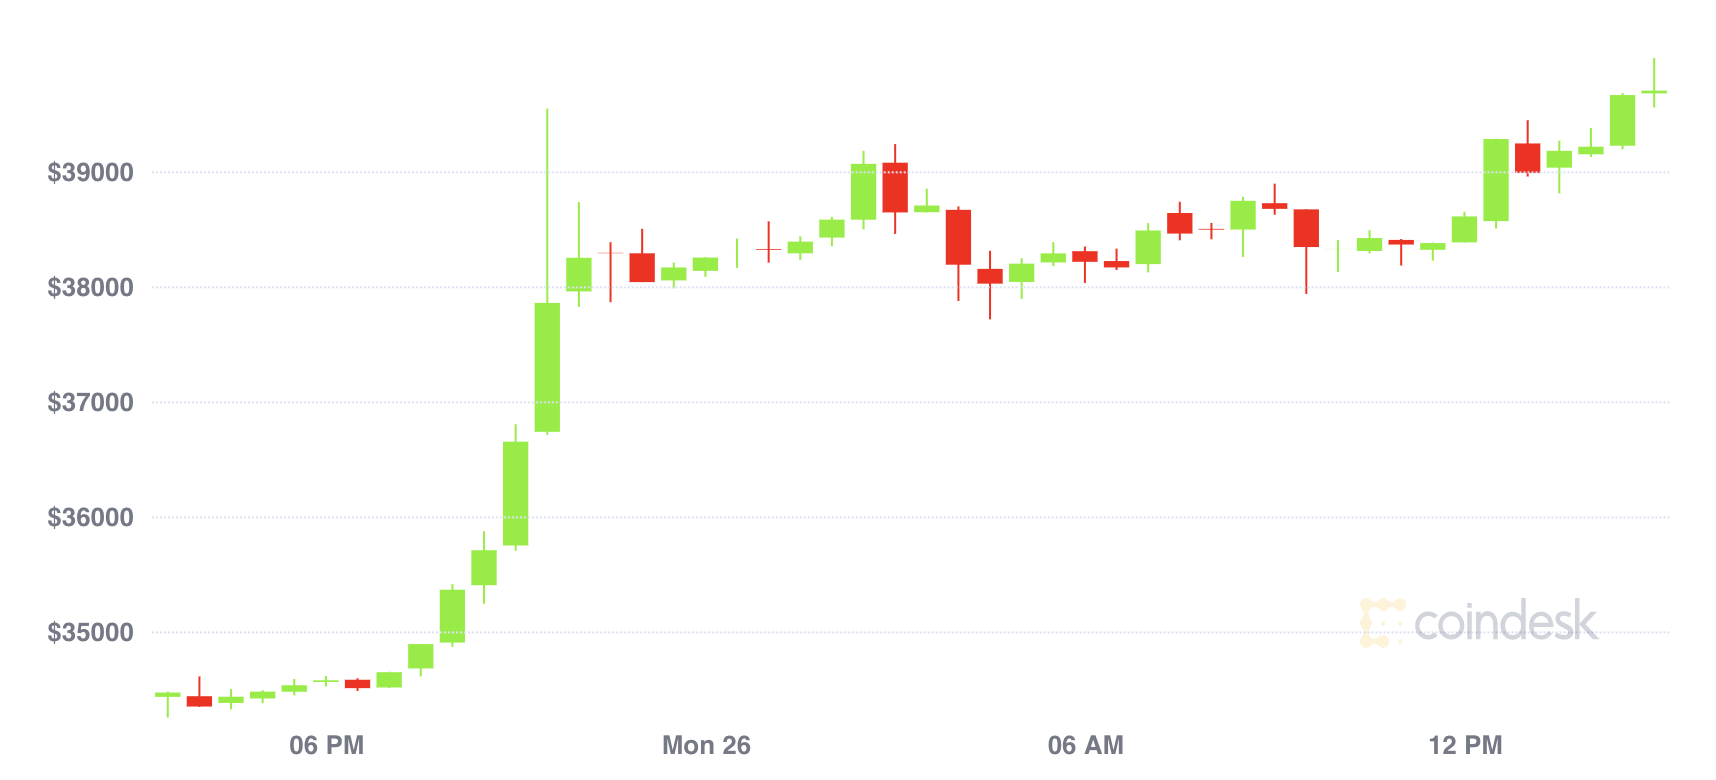 Market Wrap: Possible Trend Reversal as Bitcoin Spikes Past $40K